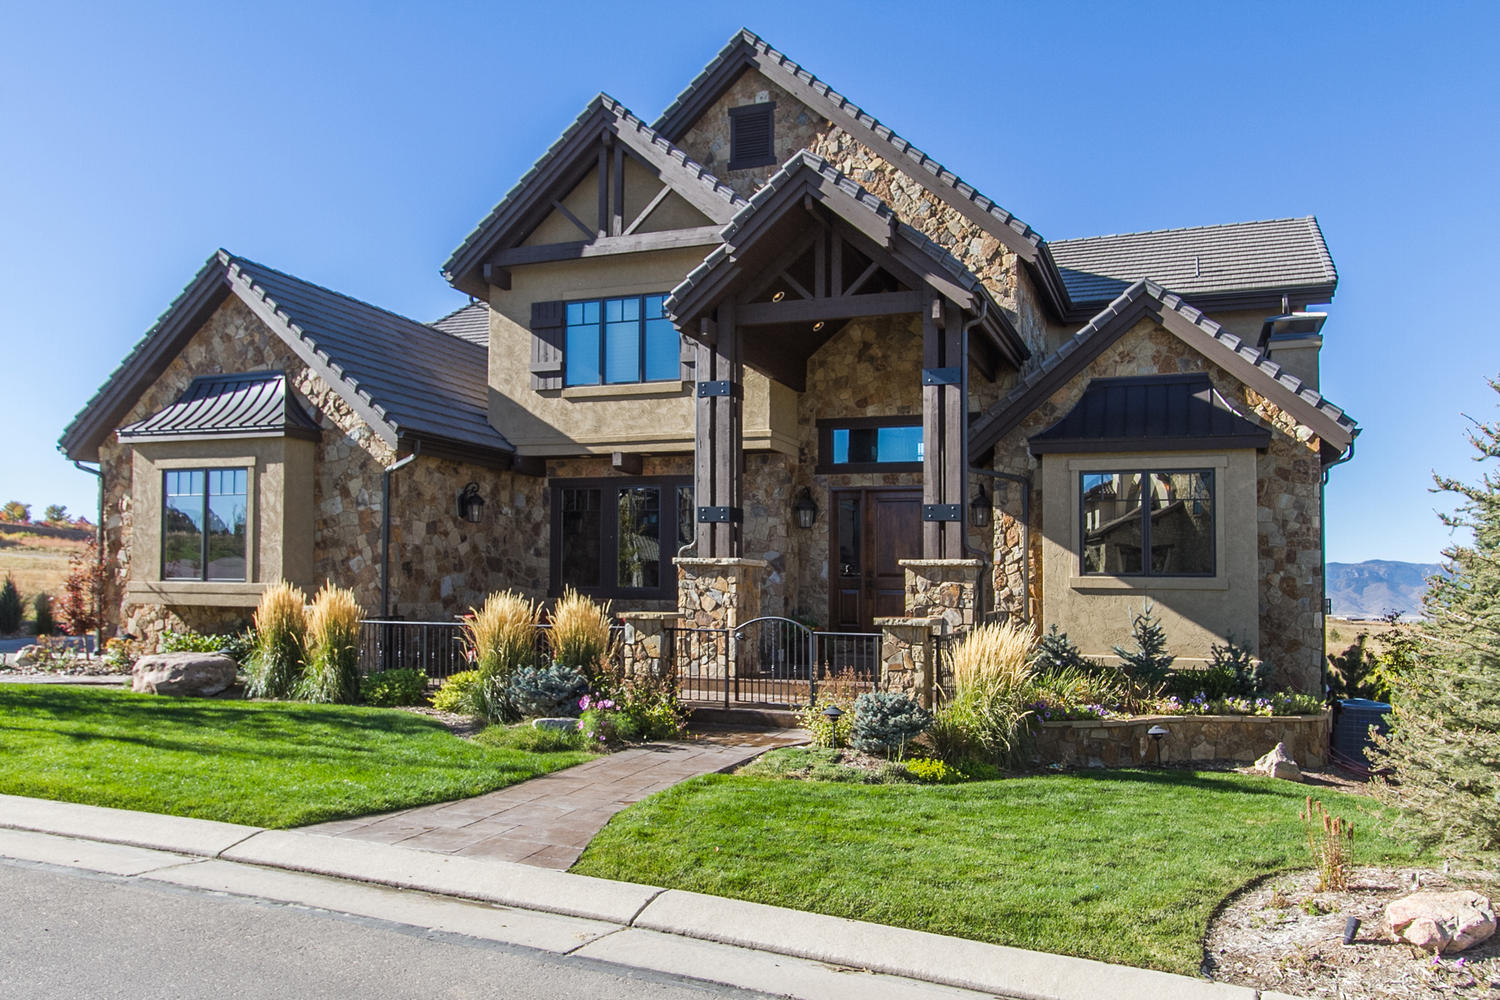 Single Family Home for Active at Colorado Custom Estate in Backcountry 10877 Rainribbon Road Highlands Ranch, Colorado 80126 United States